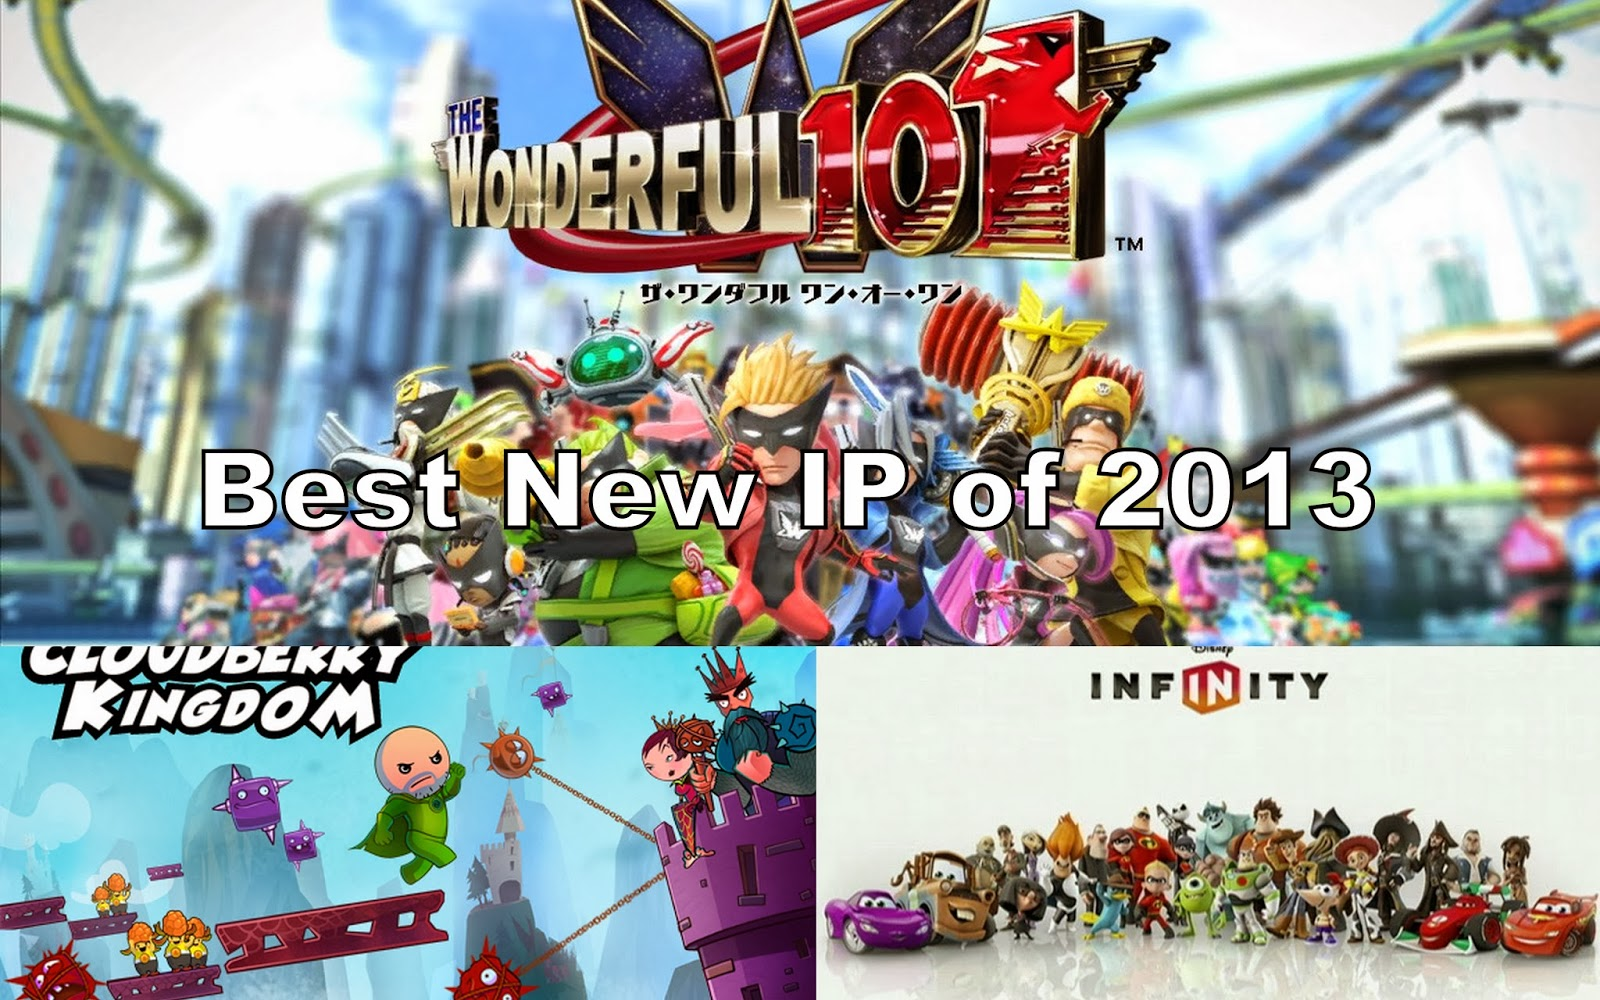 New Wii U Games 2013 : The wii u lobby video game awards ☆ best new ip